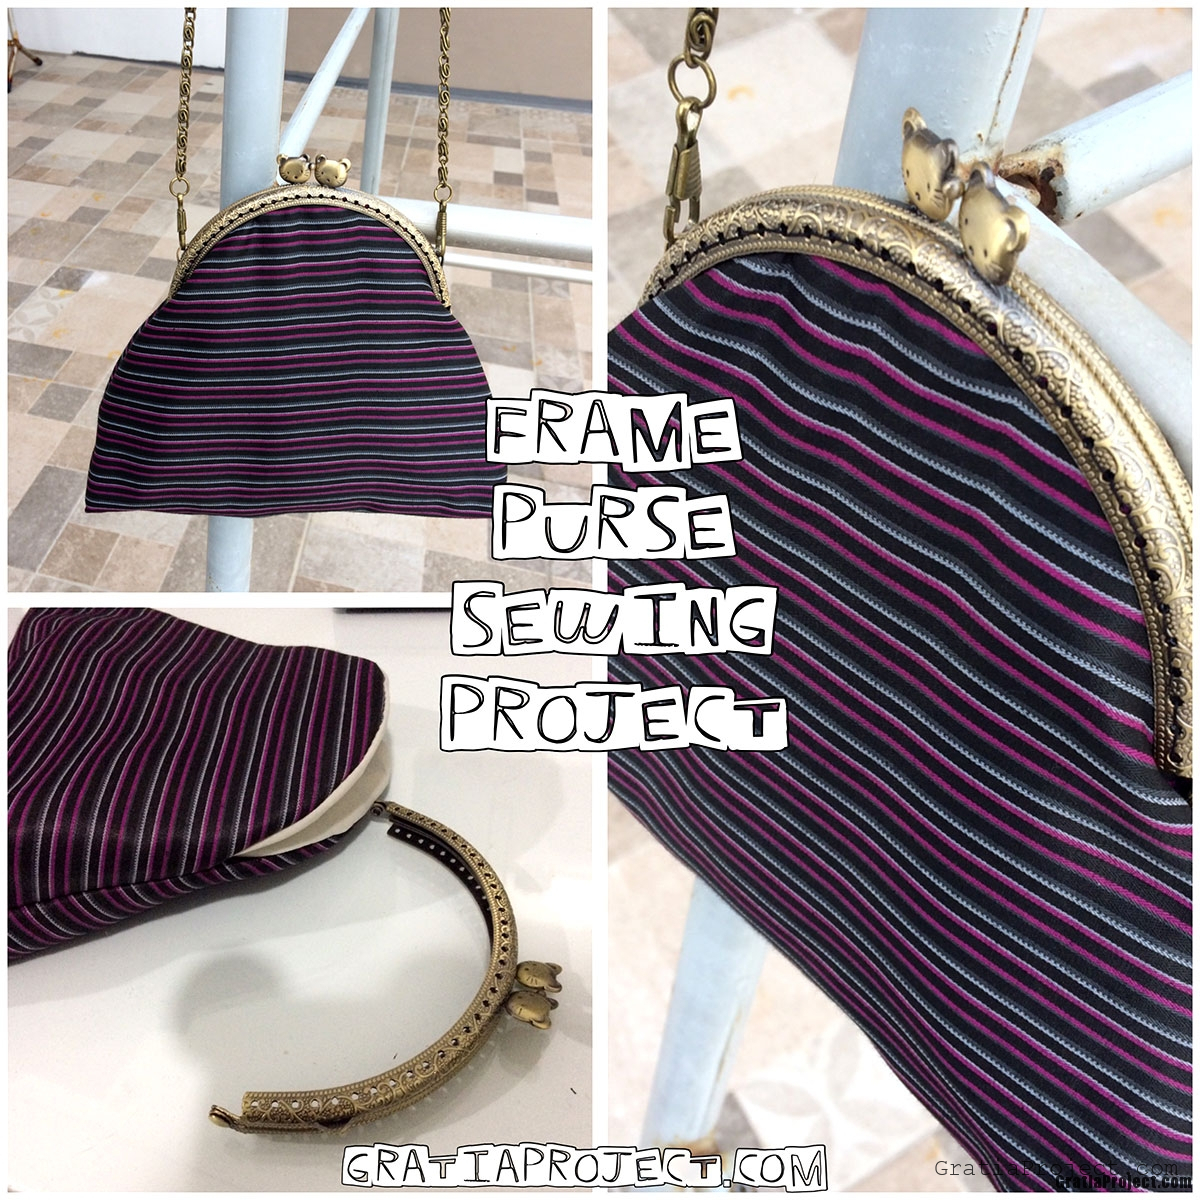 Frame Purse Crossbody Bag Sewing Project